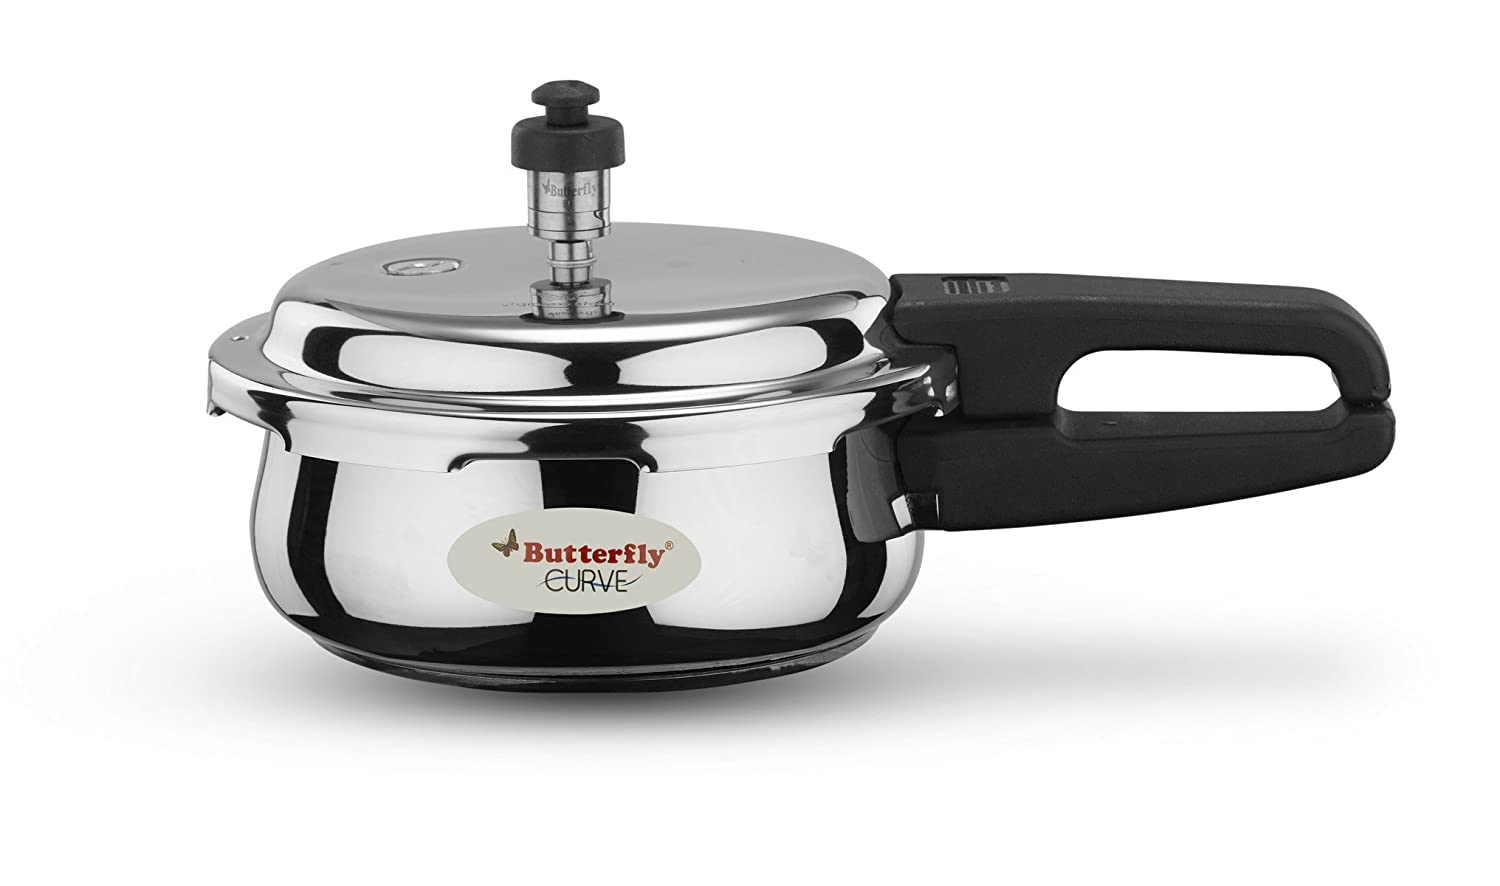 Butterfly Curve 2 Ltr Pressure Cooker, 2 Litres, Silver